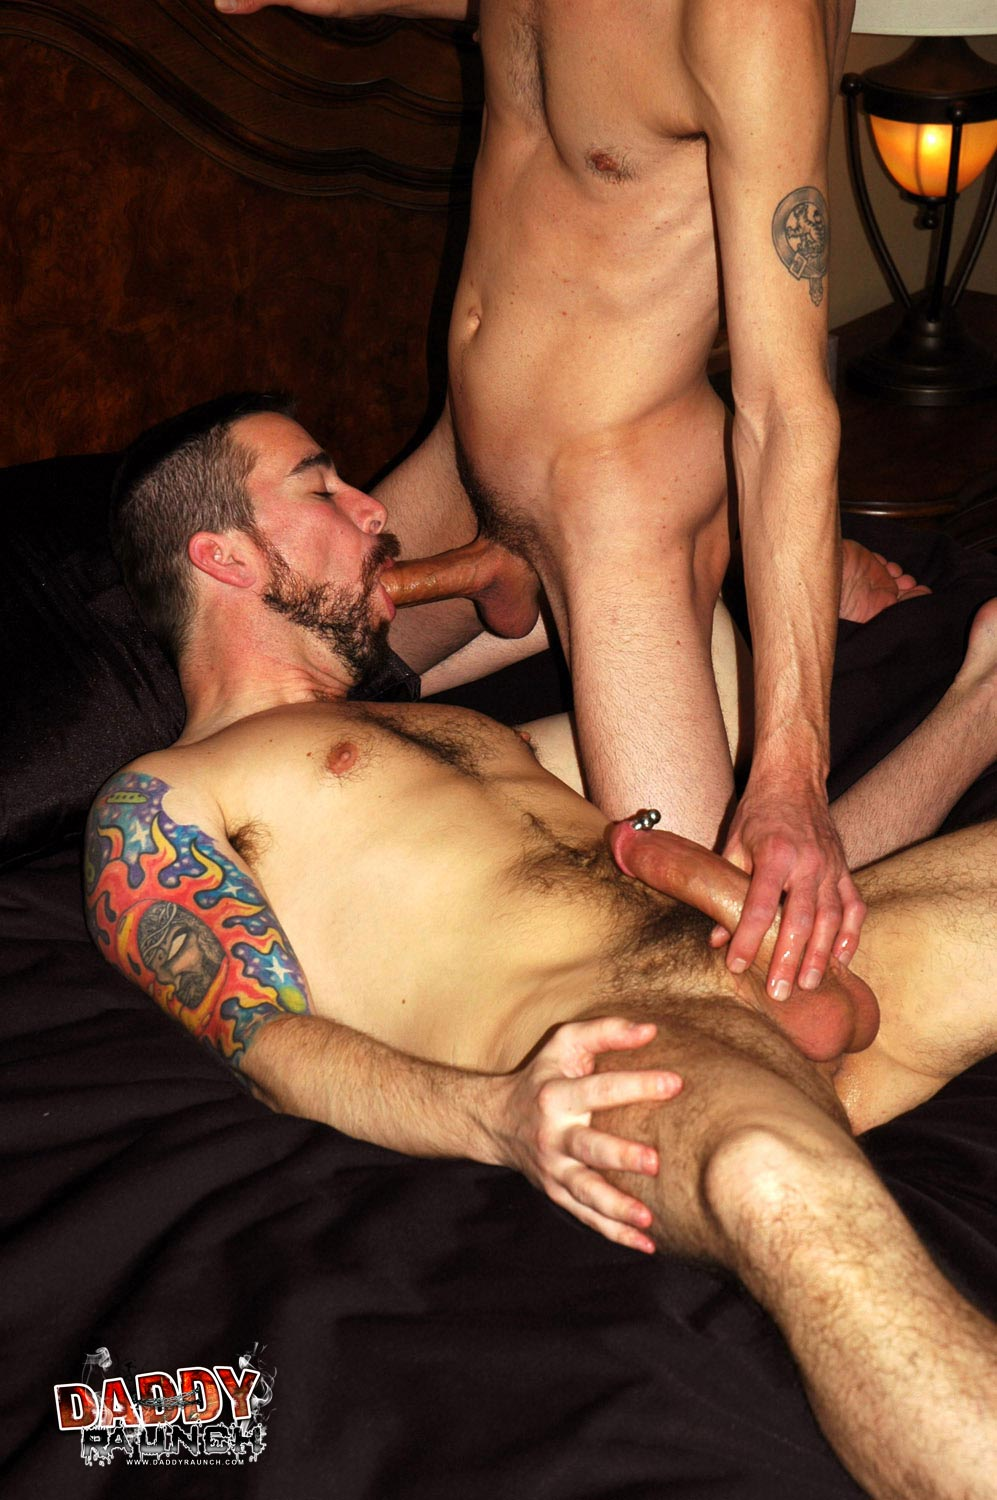 Daddy-Raunch-Sperm-Overload-III-Daddies-Fucking-Boys-Bareback-Amateur-Gay-Porn-01 Sperm Overload III - Daddies Fucking Their Boys Bareback